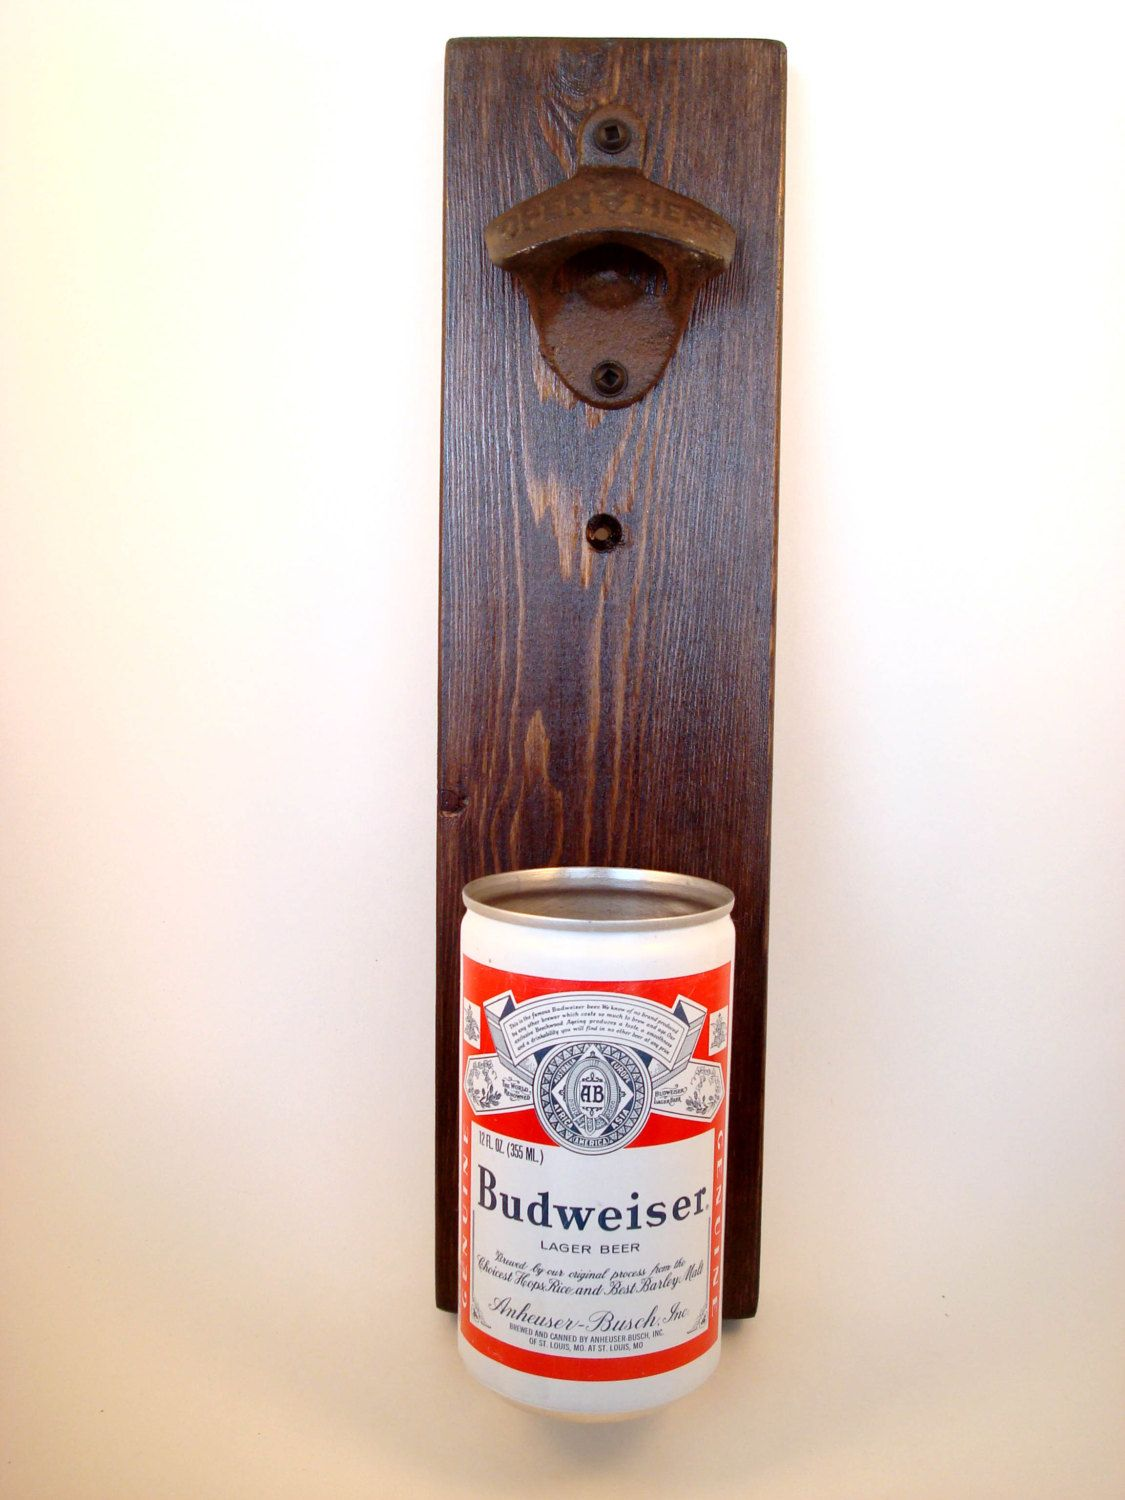 Wall Mounted Beer Opener And Catcher Wall Mounted Bottle Opener Featuring A Vintage Budweiser